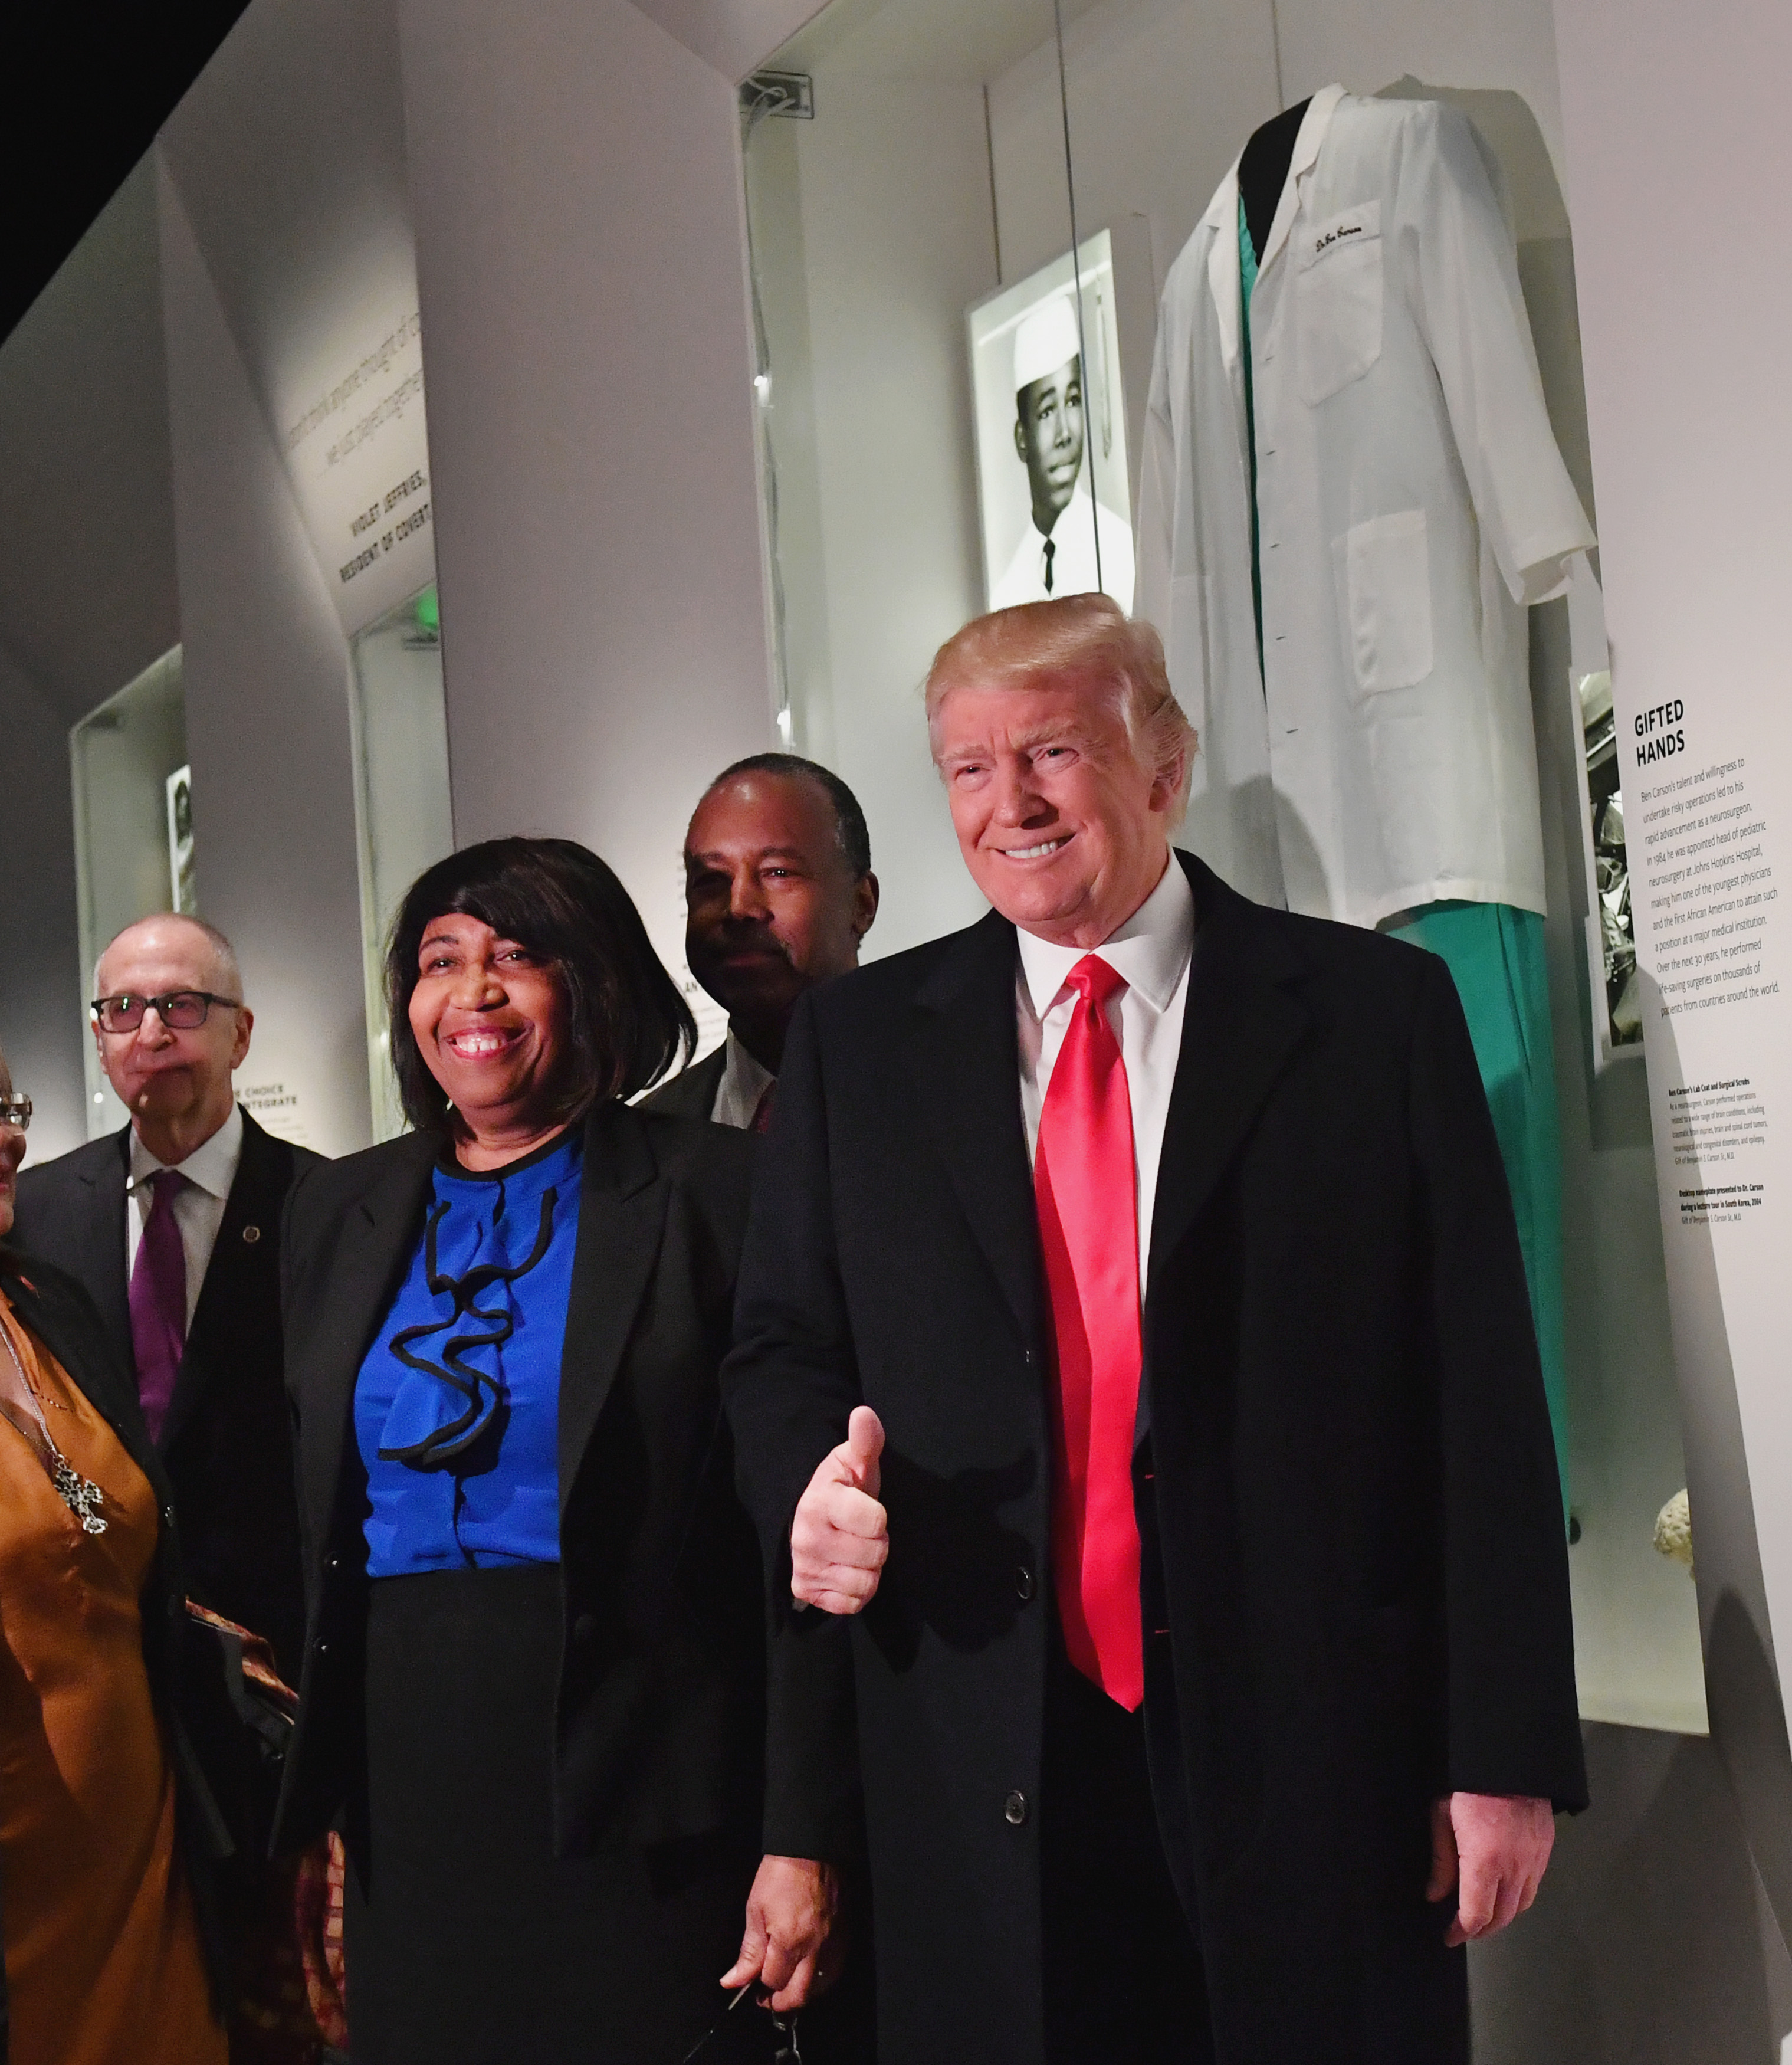 President Donald Trump, Ivanka Trump and Housing and Urban Development nominee Ben Carson pose in front of the Ben Carson exhibit during a visit to the Smithsonian National Museum of African American History and Culture (Photo by Kevin Dietsch - Pool/Getty Images)